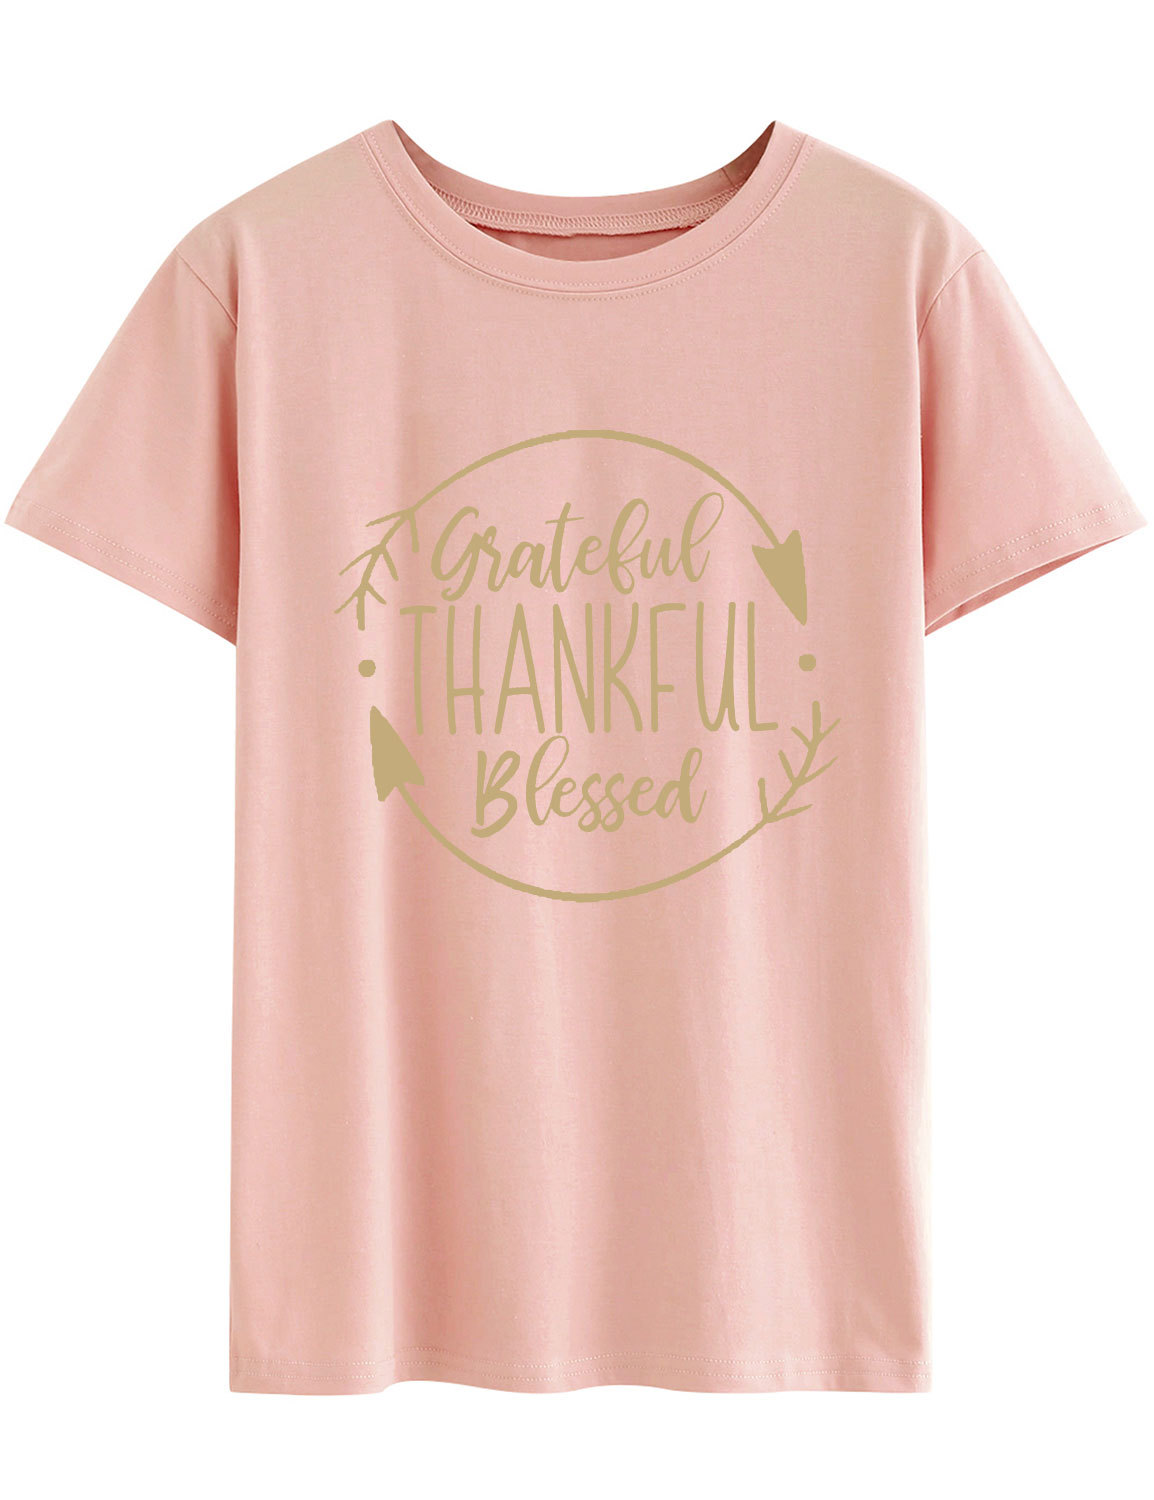 grateful thankful blessed tshirt 90s punk pink womens clothing christmas graphic tees women vintage streetwear aesthetic